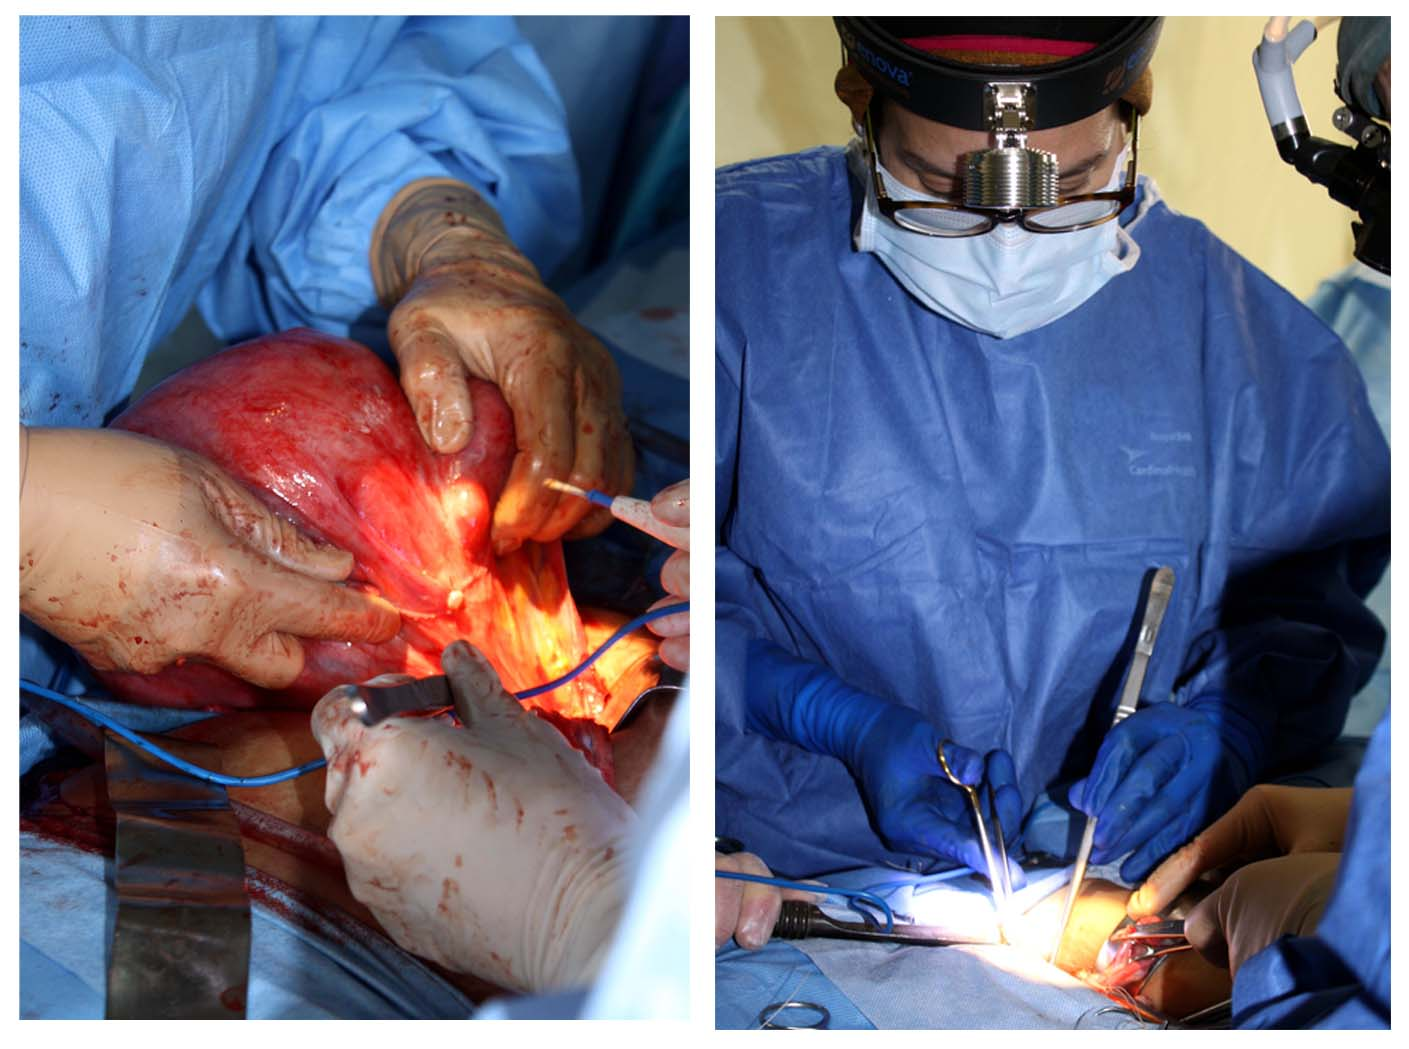 Dr. Tapia-Santiago performing an operation in Guatemala using Enova Illumination LED surgical headlight.